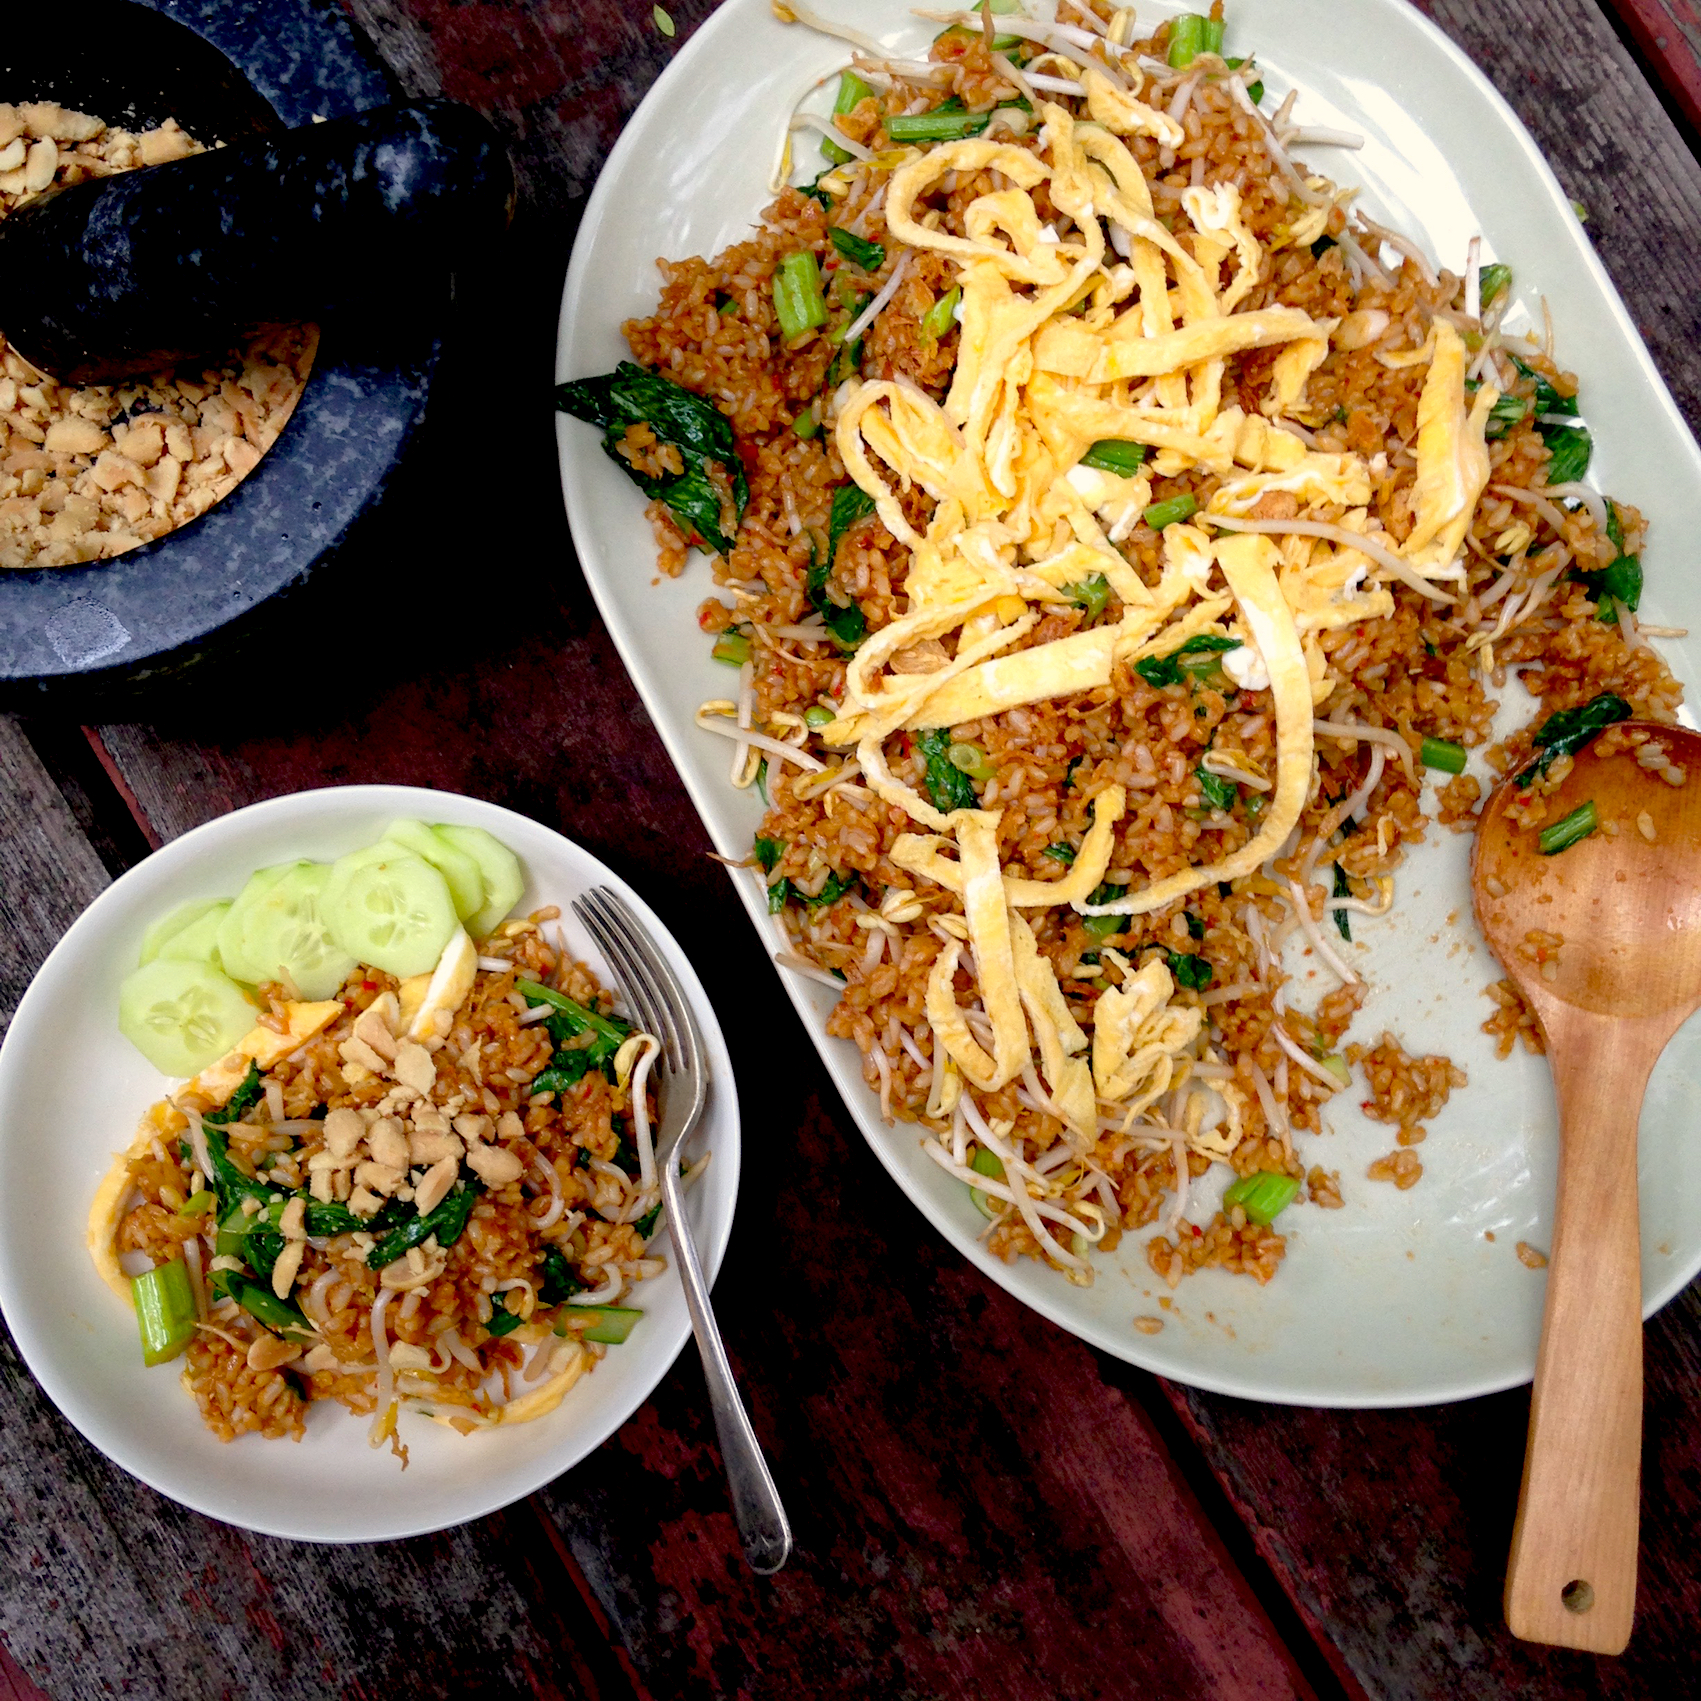 Asian rice dish goreng pics